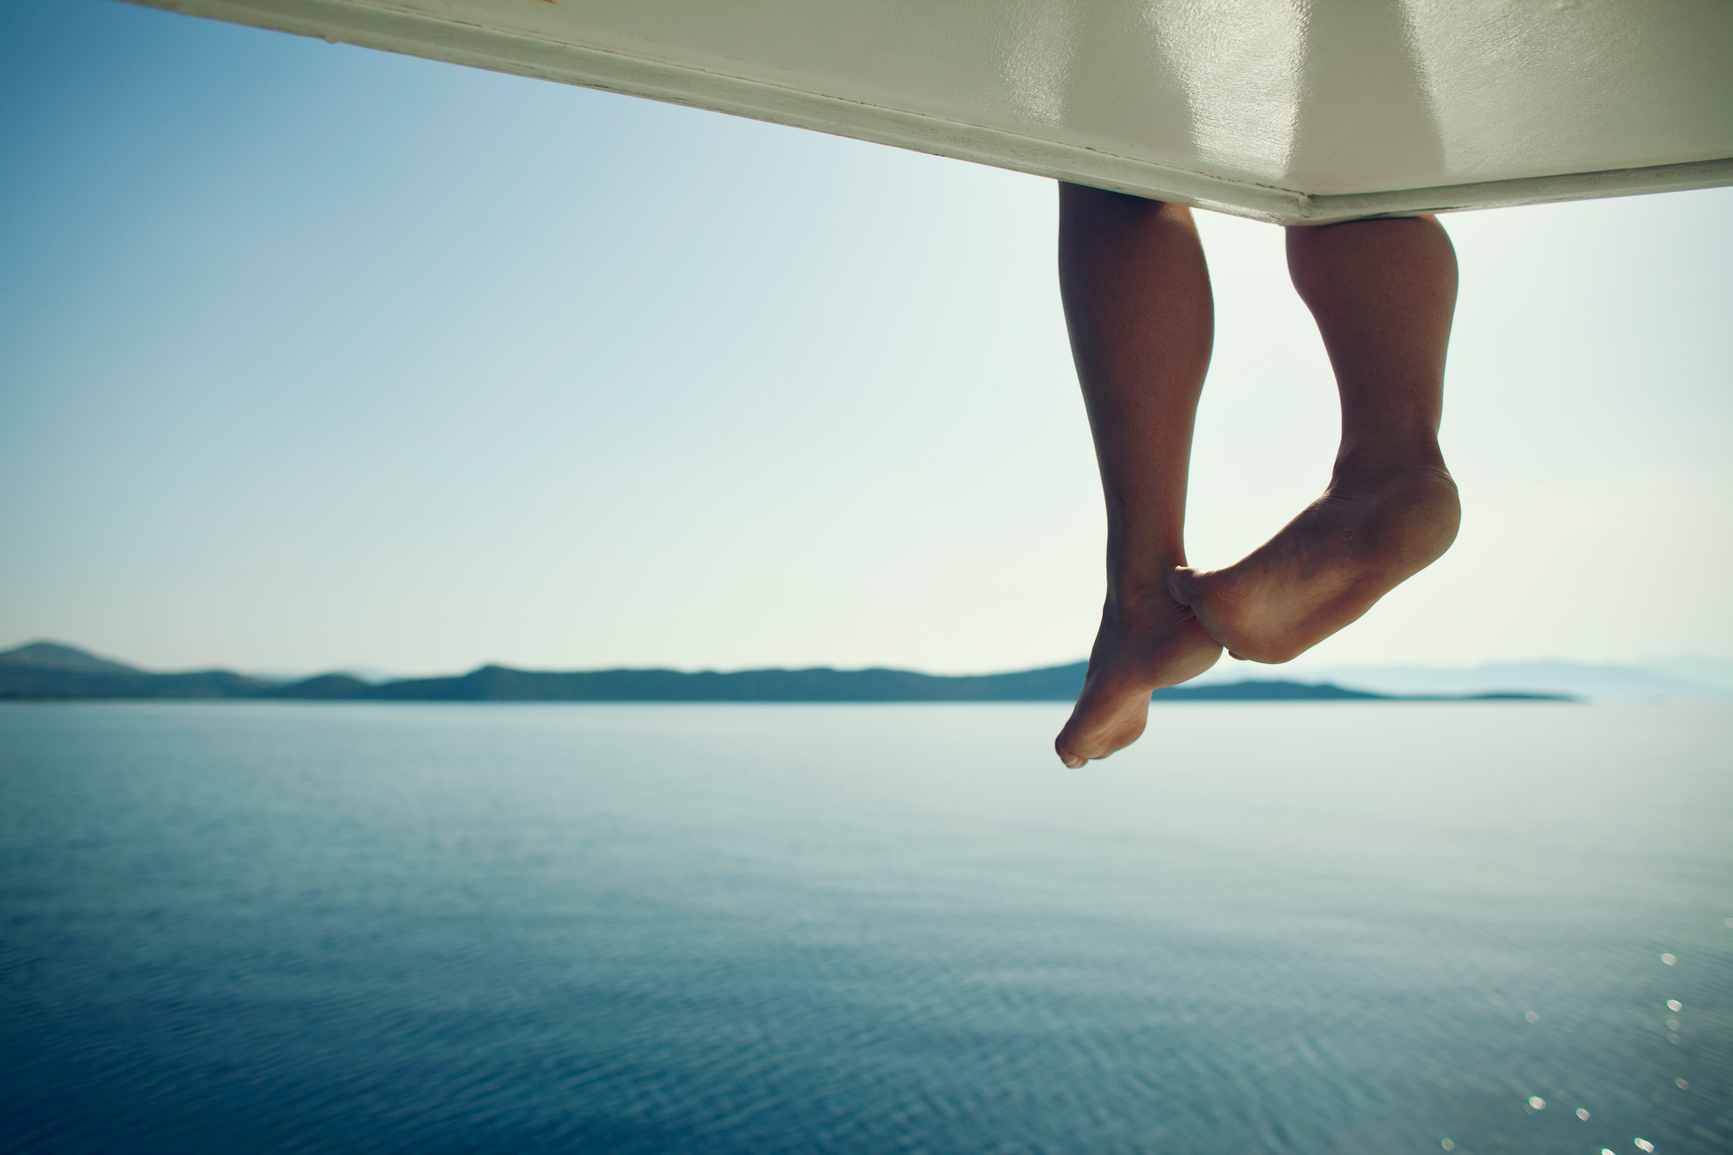 the ocean with someone sitting on a boot and their feet dangling down above the water